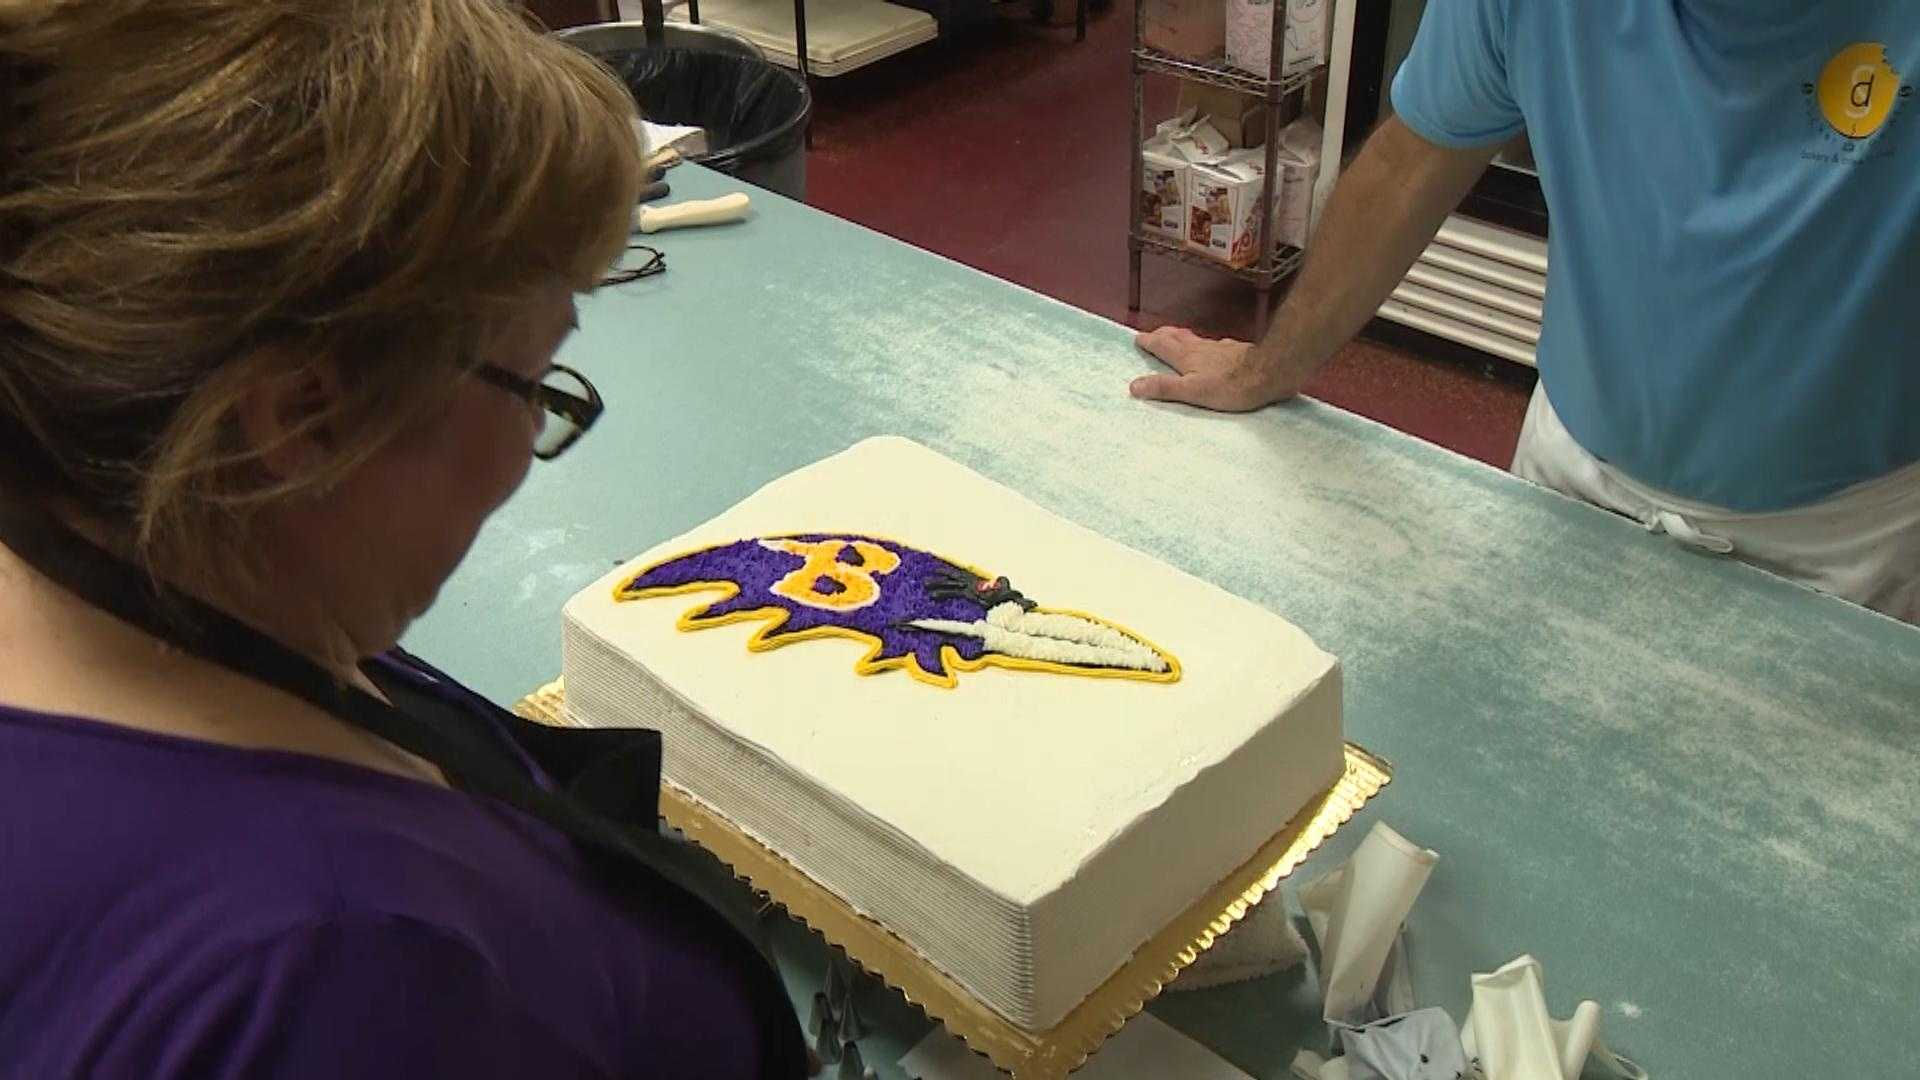 Snickerdoodles has been contracted to create cakes for the Ravens after the team's victories this season